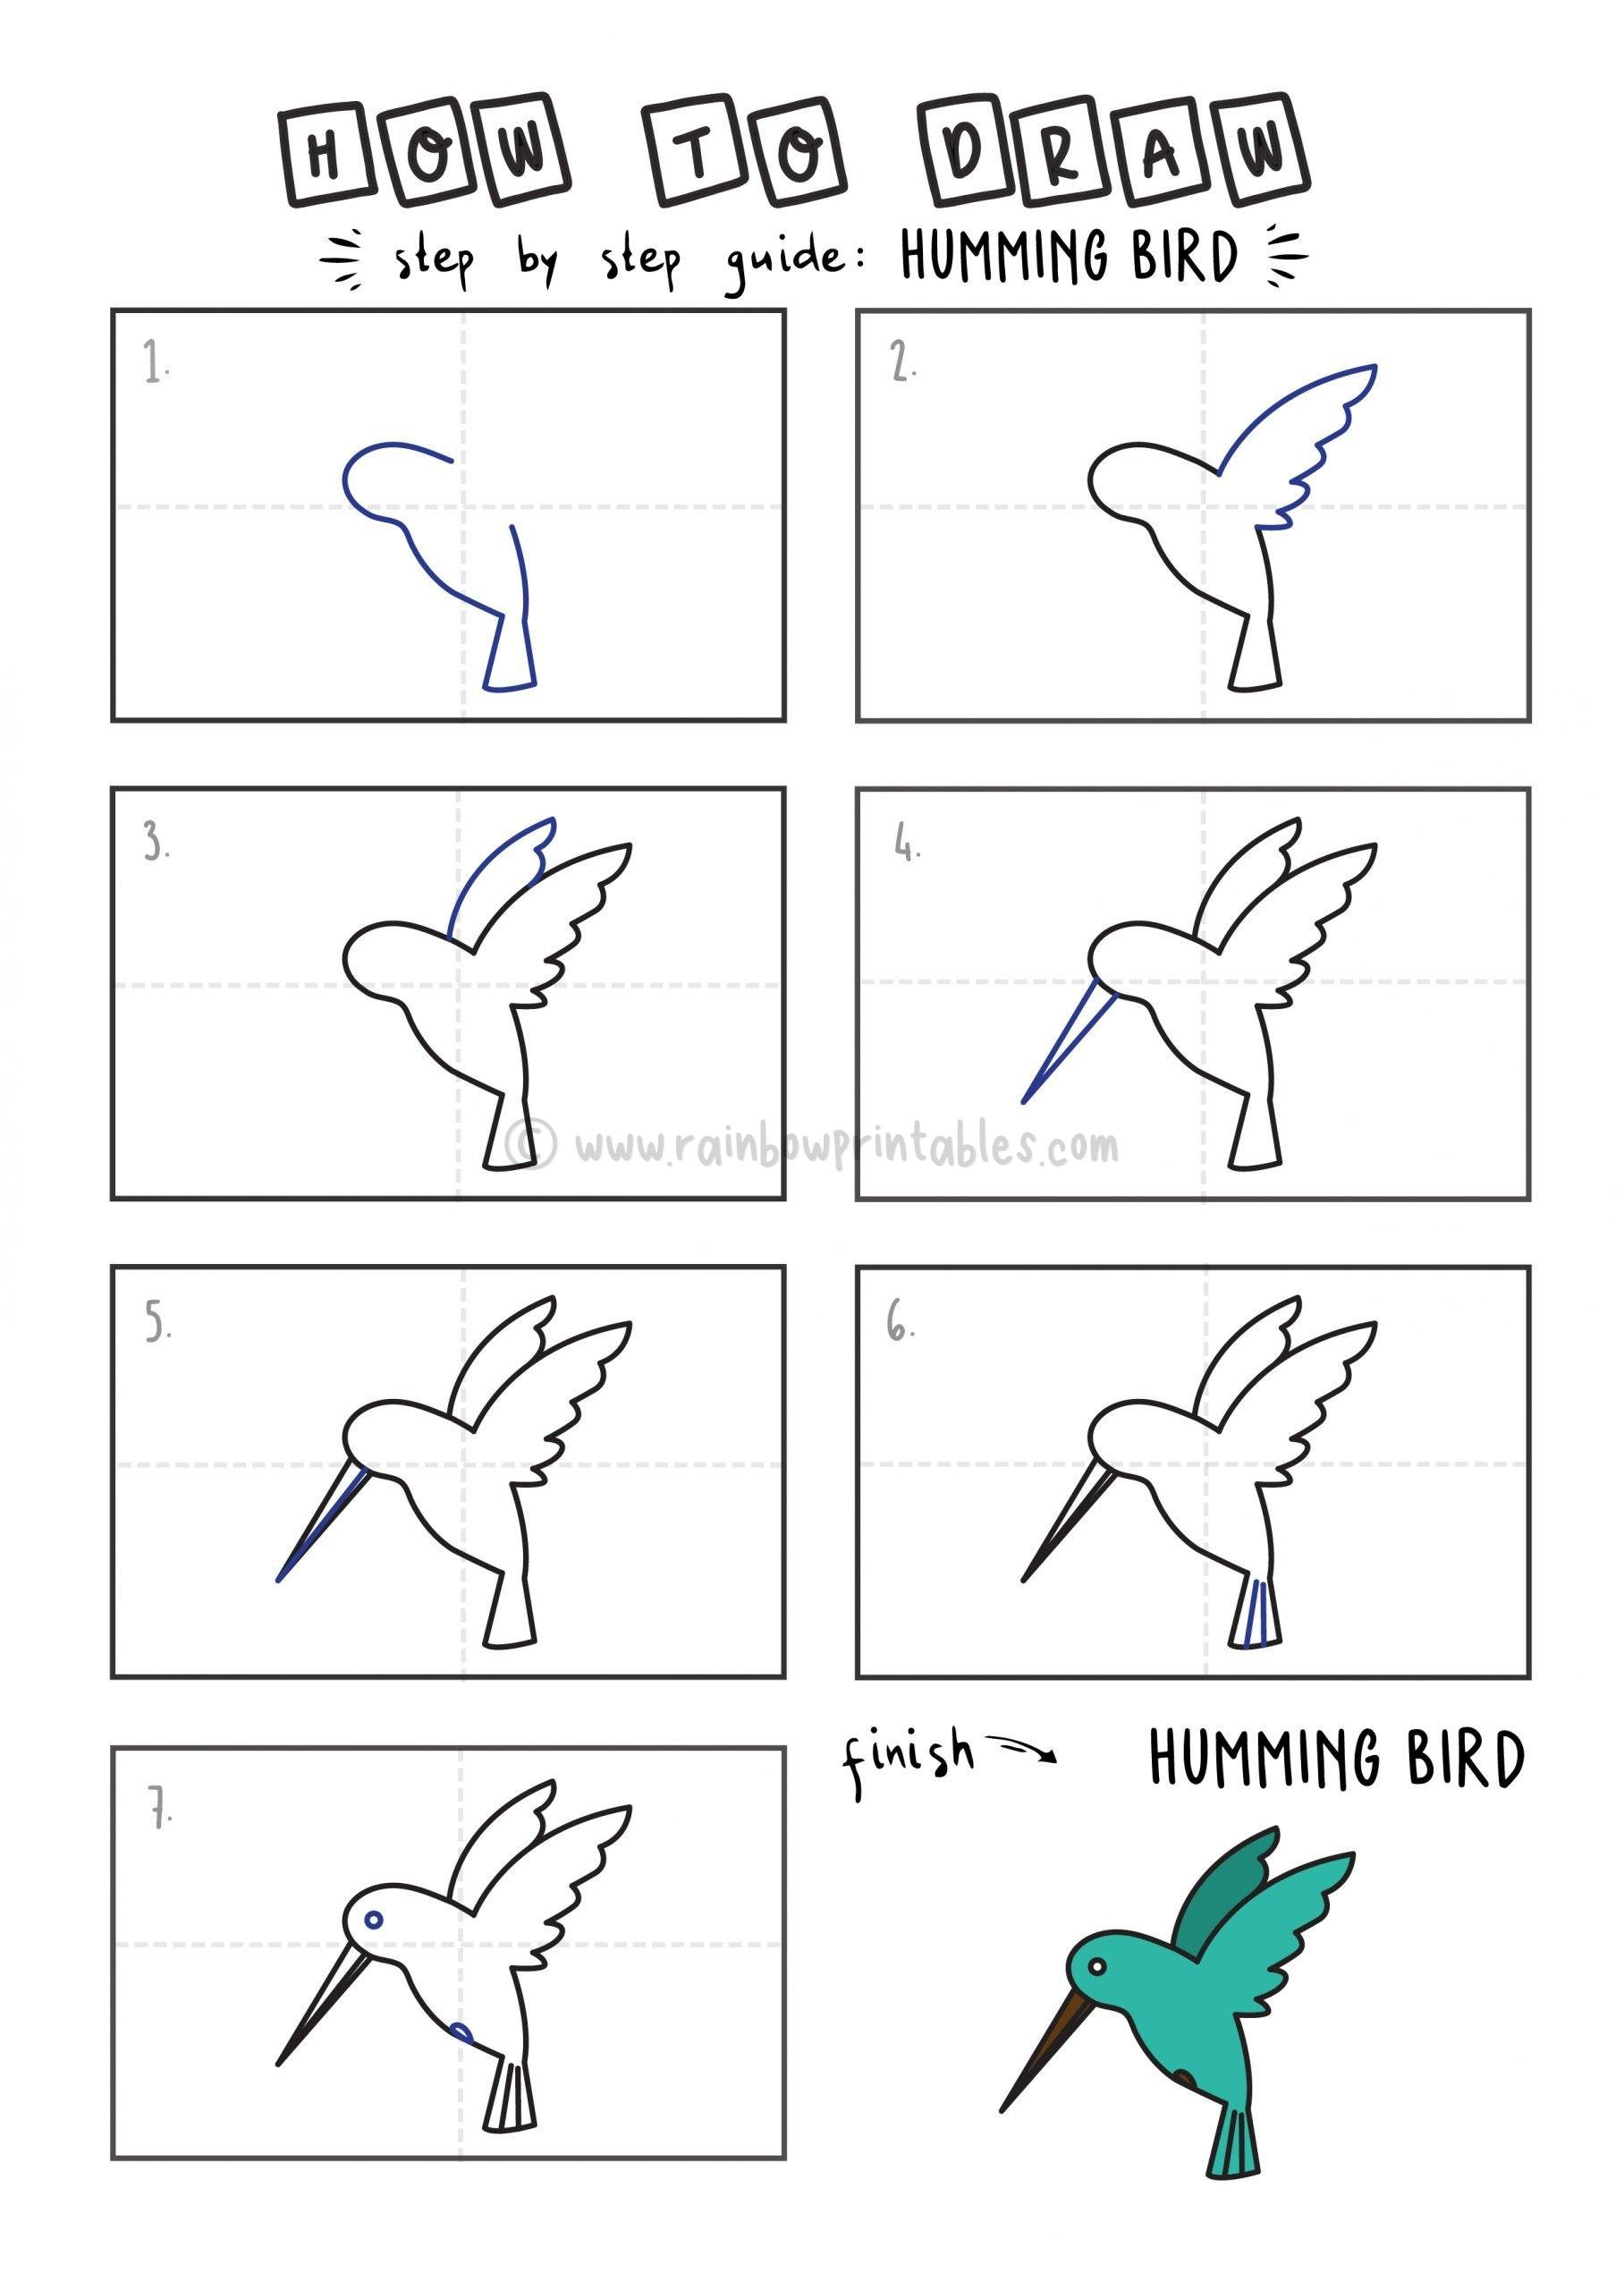 How To Draw Tutorials For Kids HUMMINGBIRD YOUNG KIDS EASY DRAWINGS ART GUIDE STEP BY STEP